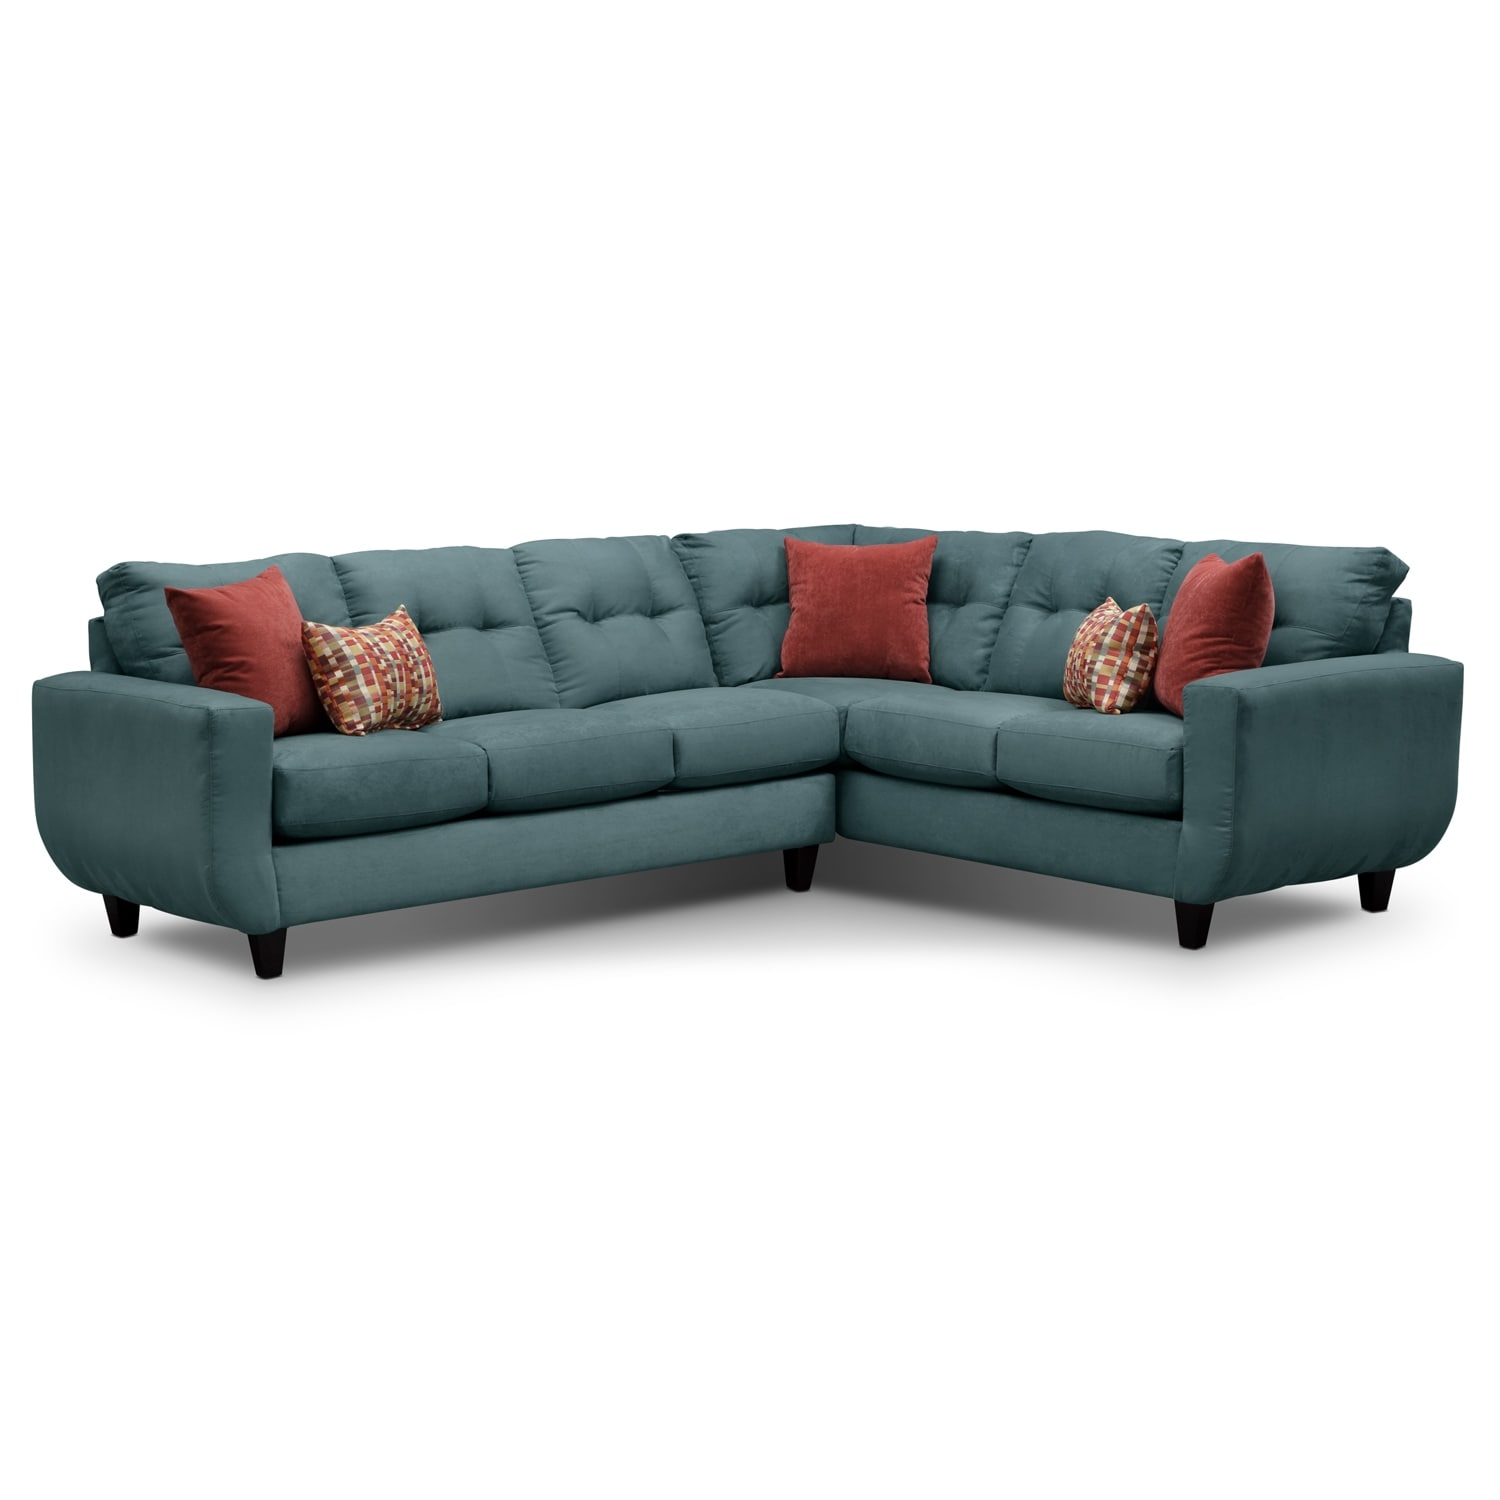 West Village Blue II 2 Pc. Sectional